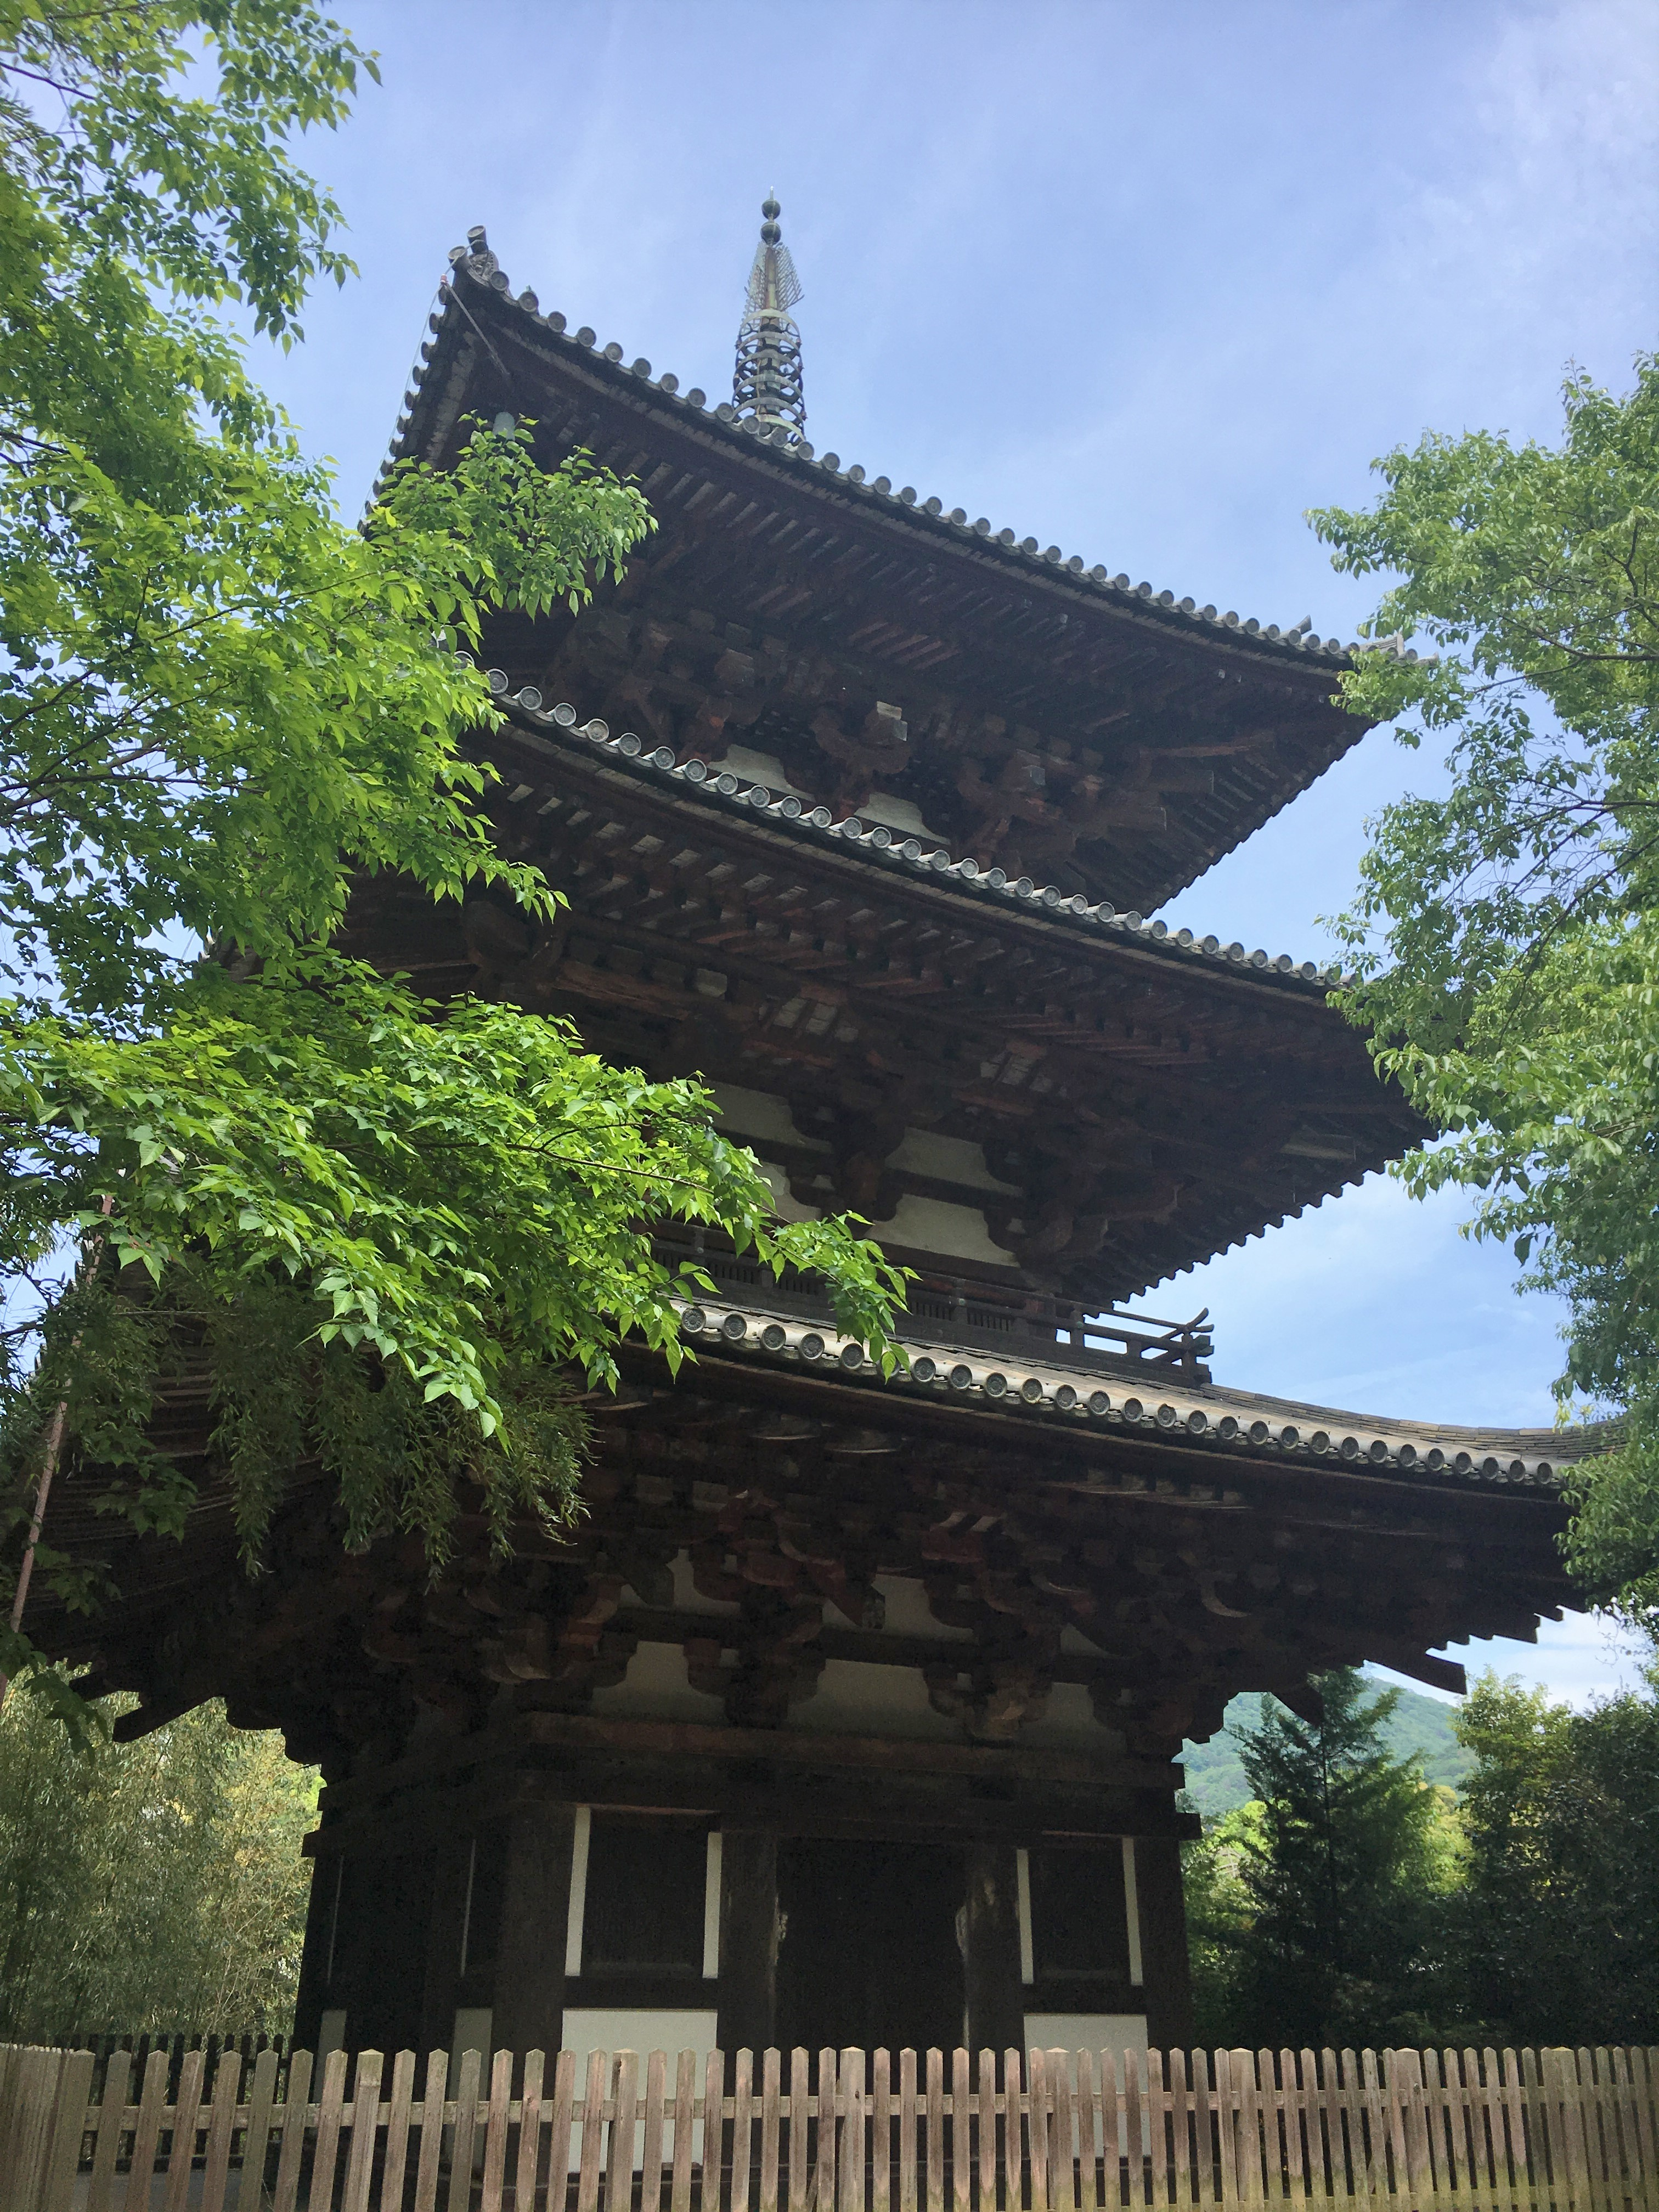 To-in pagoda of Taima-dera